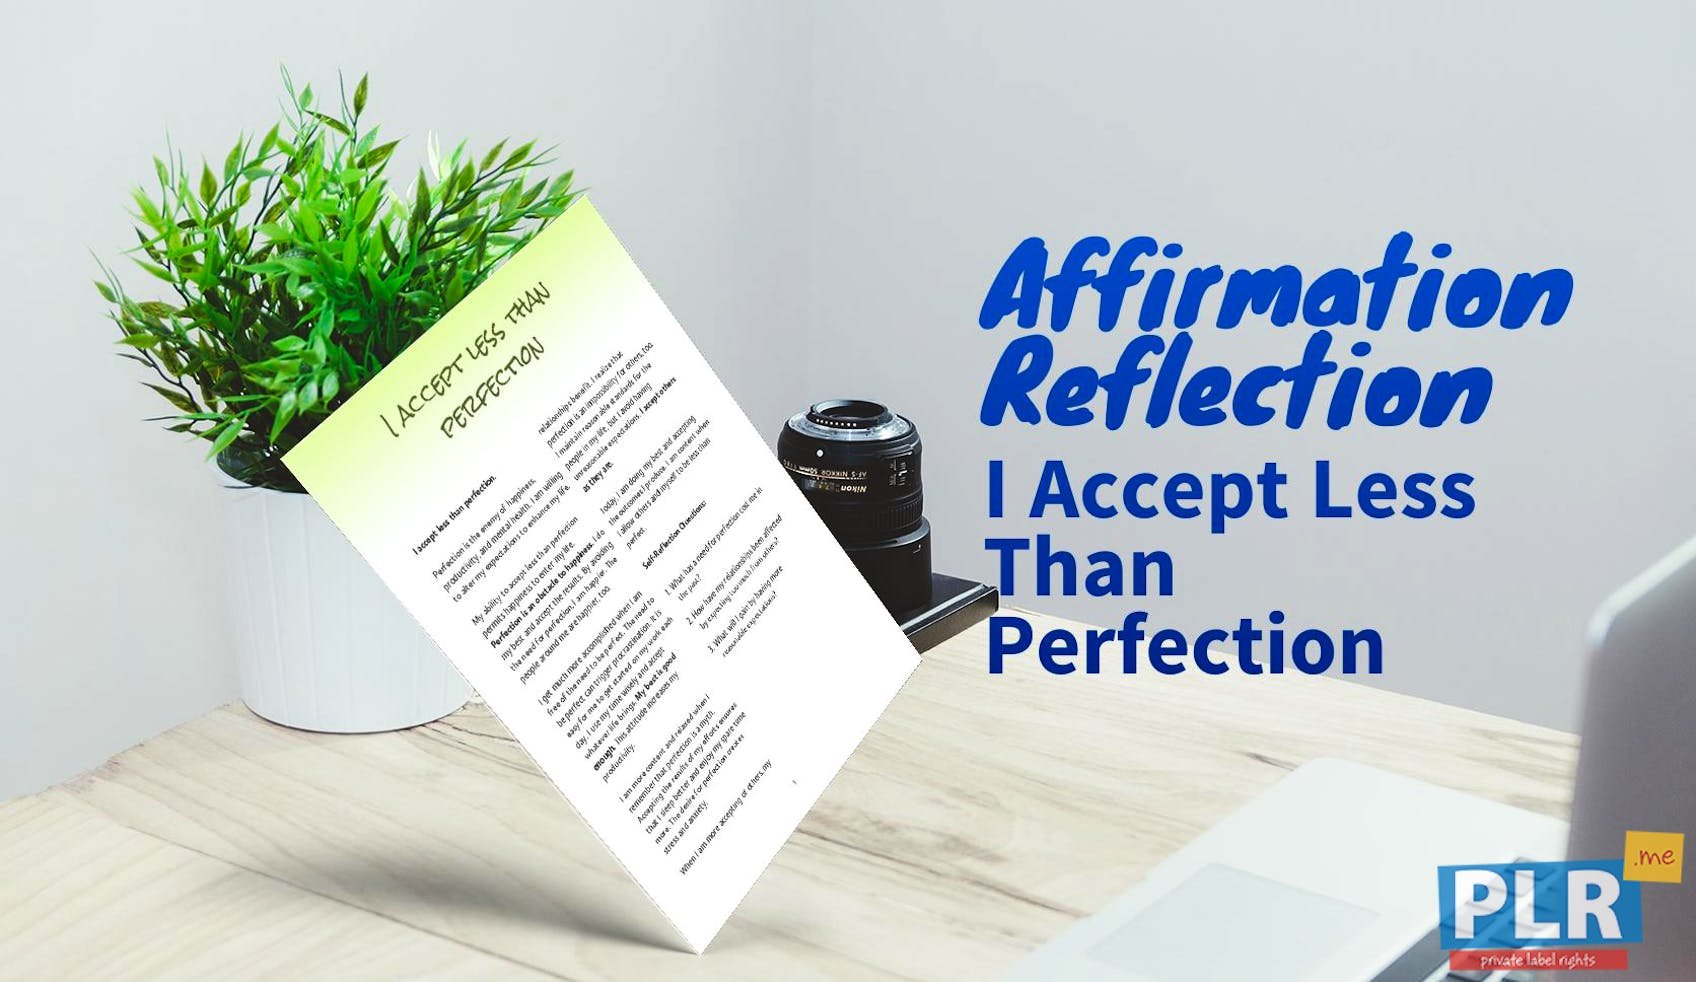 I Accept Less Than Perfection